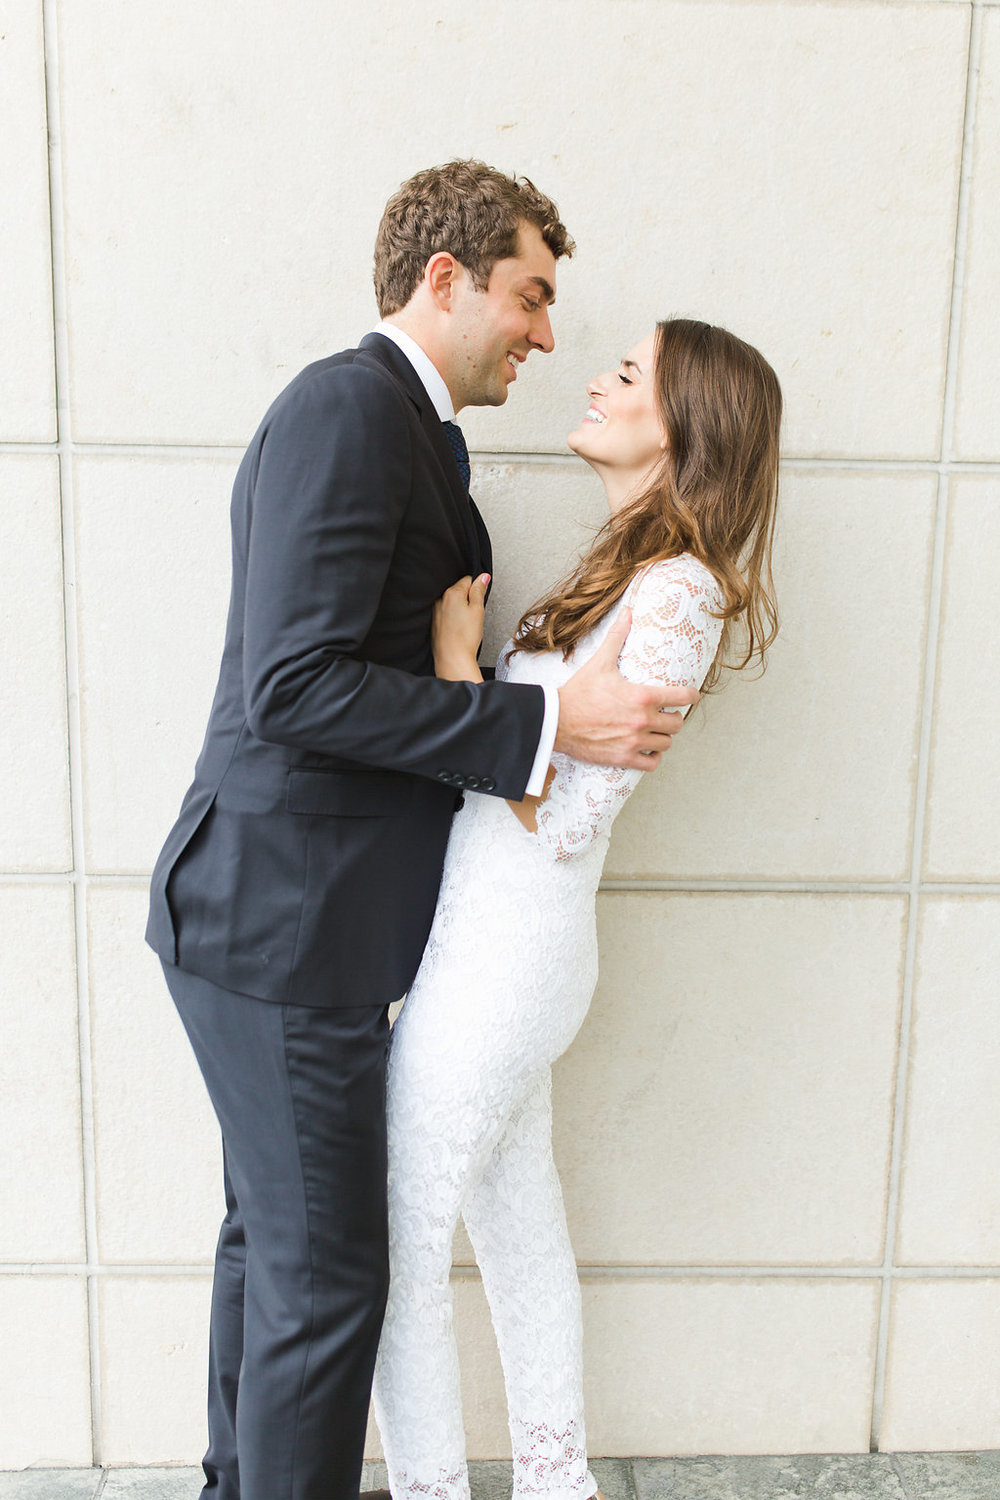 Seattle Courthouse Wedding | Seattle Municipal Court | Downtown Seattle Wedding | Intimate Elopement Wedding | Beautiful Simple Courthouse Wedding | Bride and Groom Portrait | White Wedding Jumpsuit Outfit | Posing Inspiration